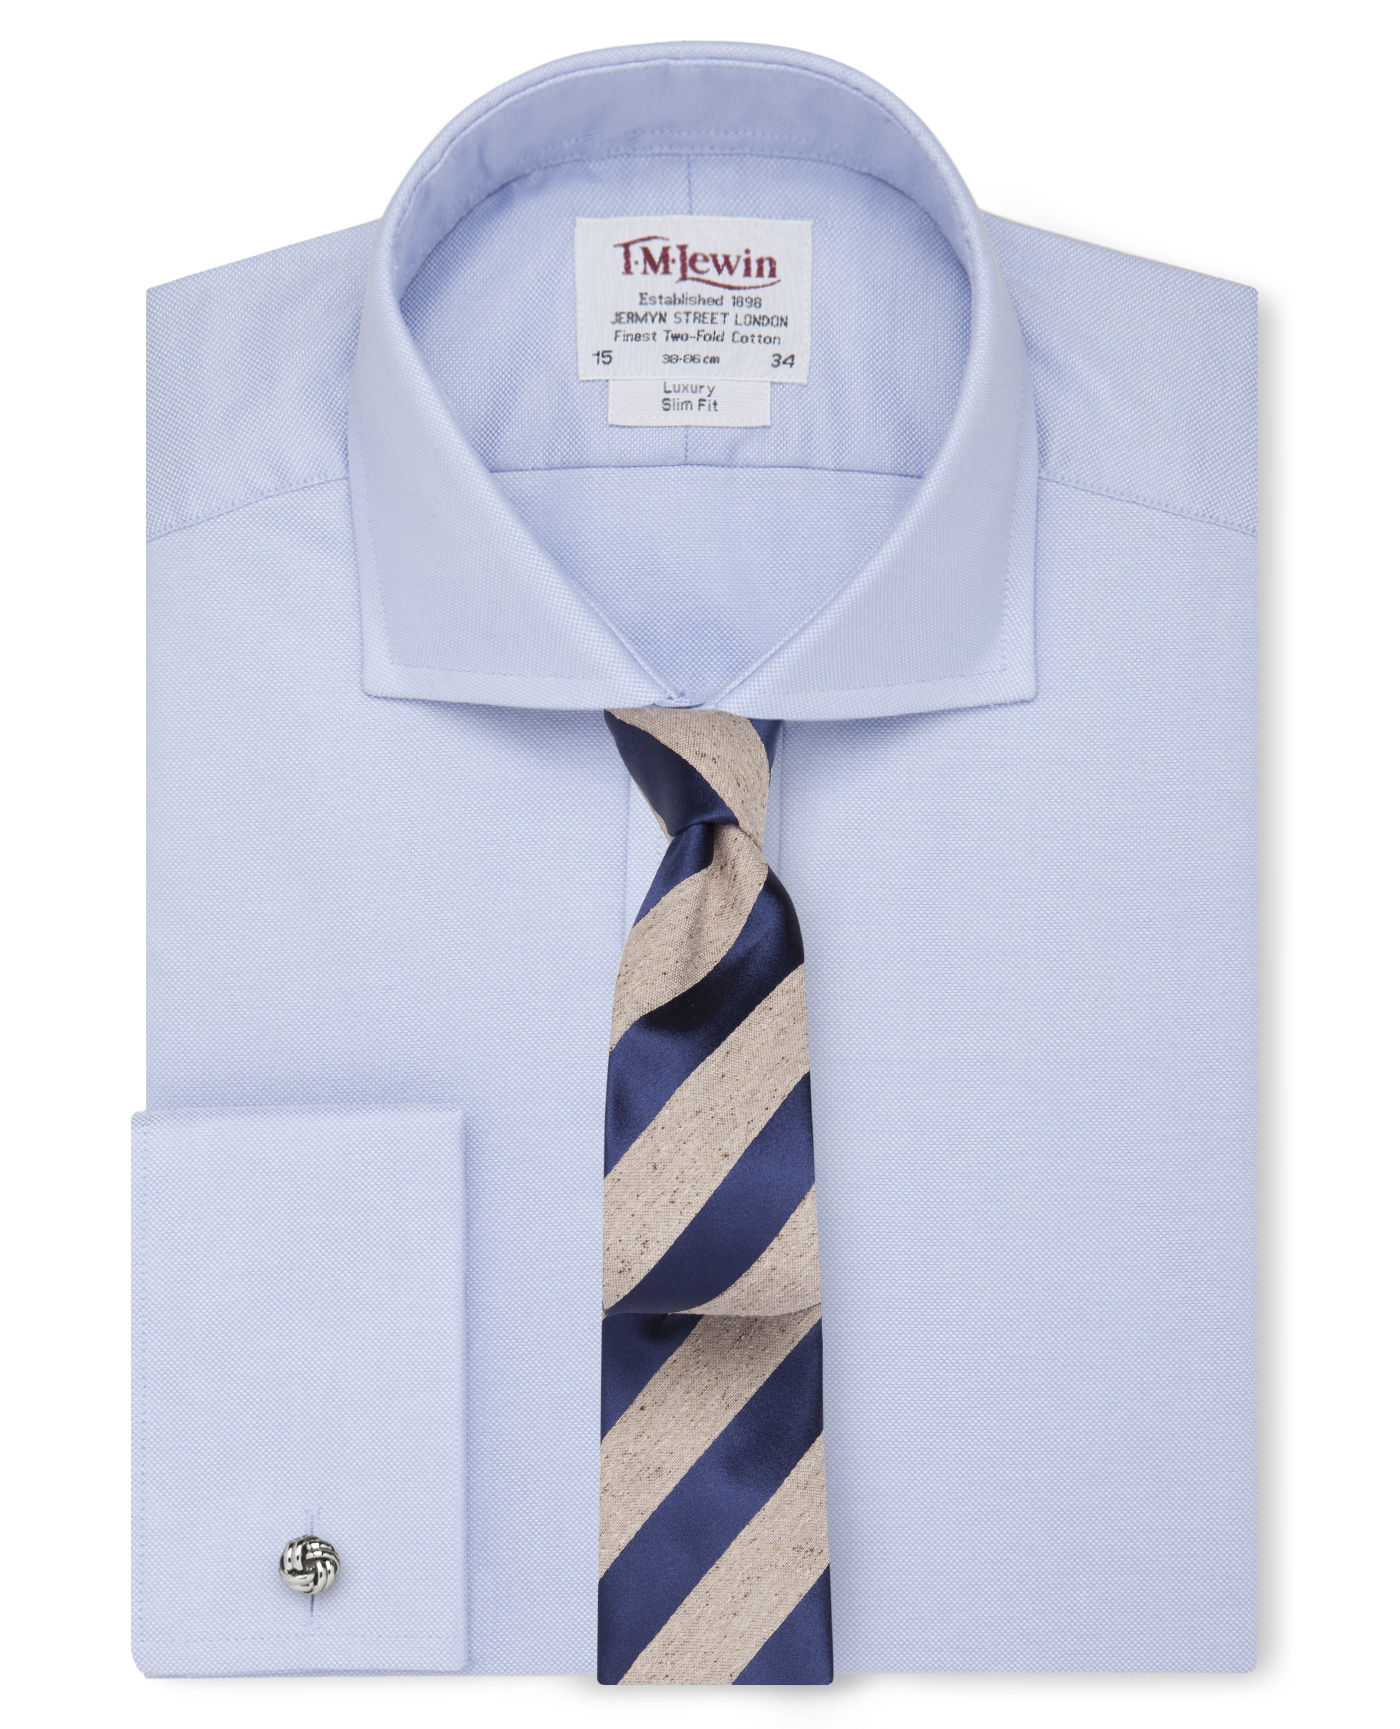 Cutaway Collar | Collared Shirts for Men | Mens Shirt Collars